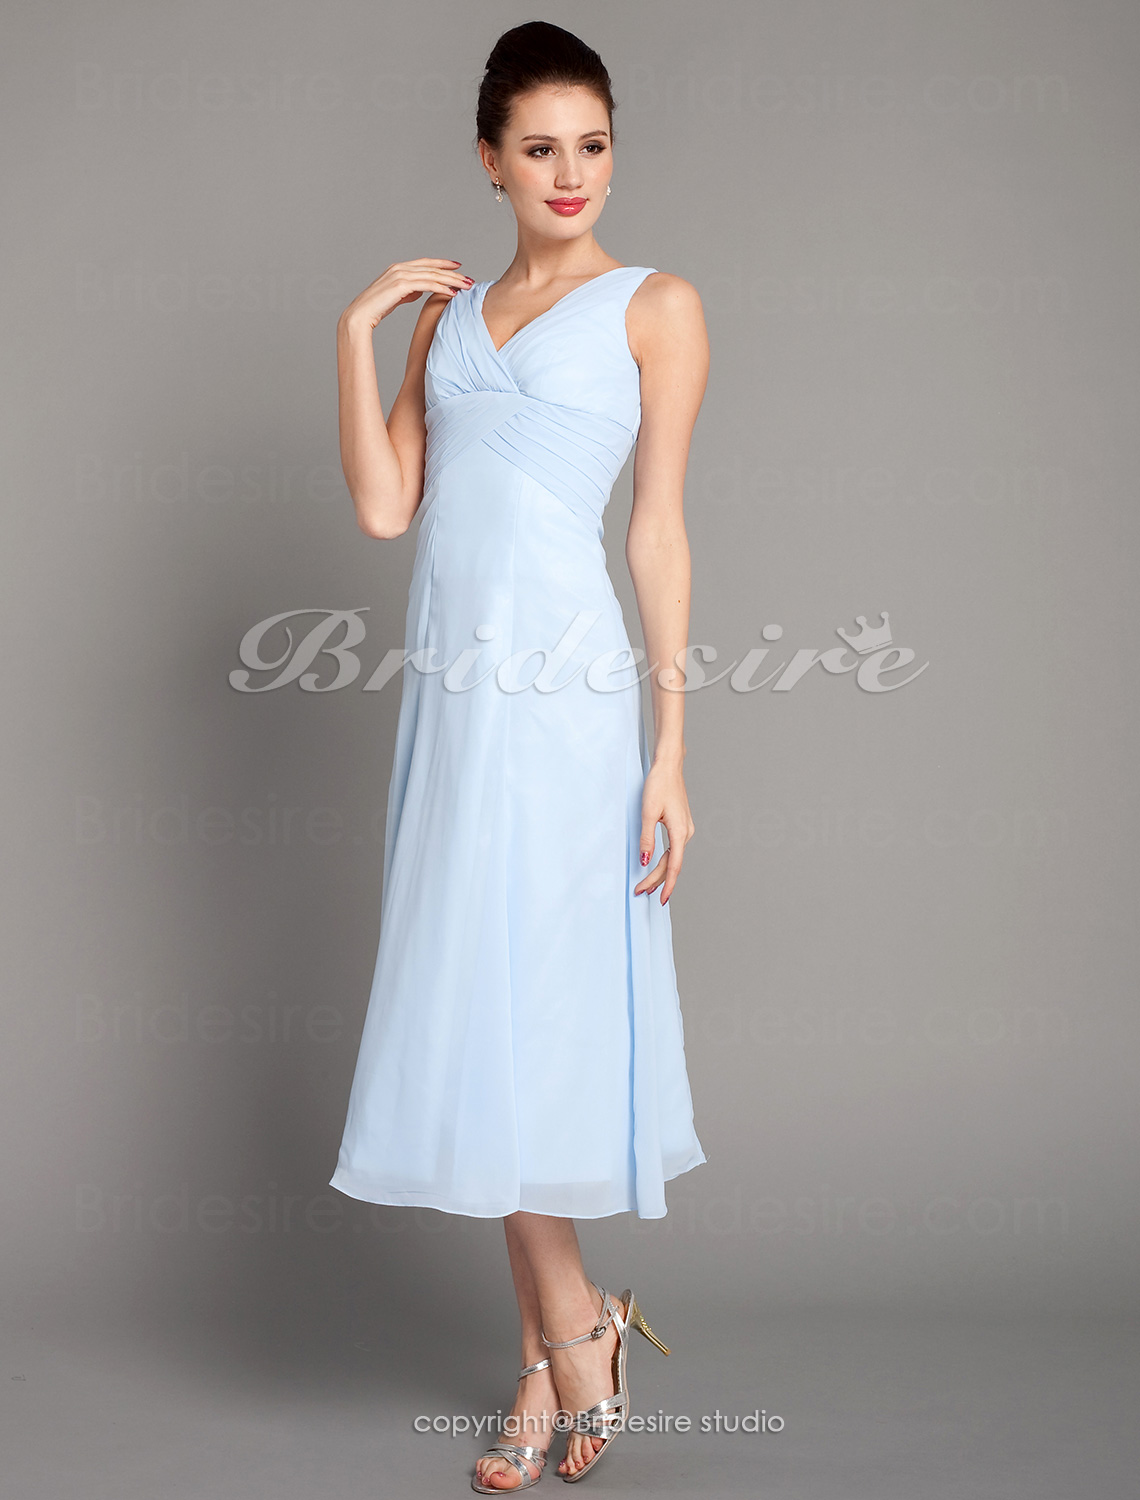 A-line Knee-length Chiffon V-neck Bridesmaid/ Wedding Party Dress With Criss-Cross Bodice